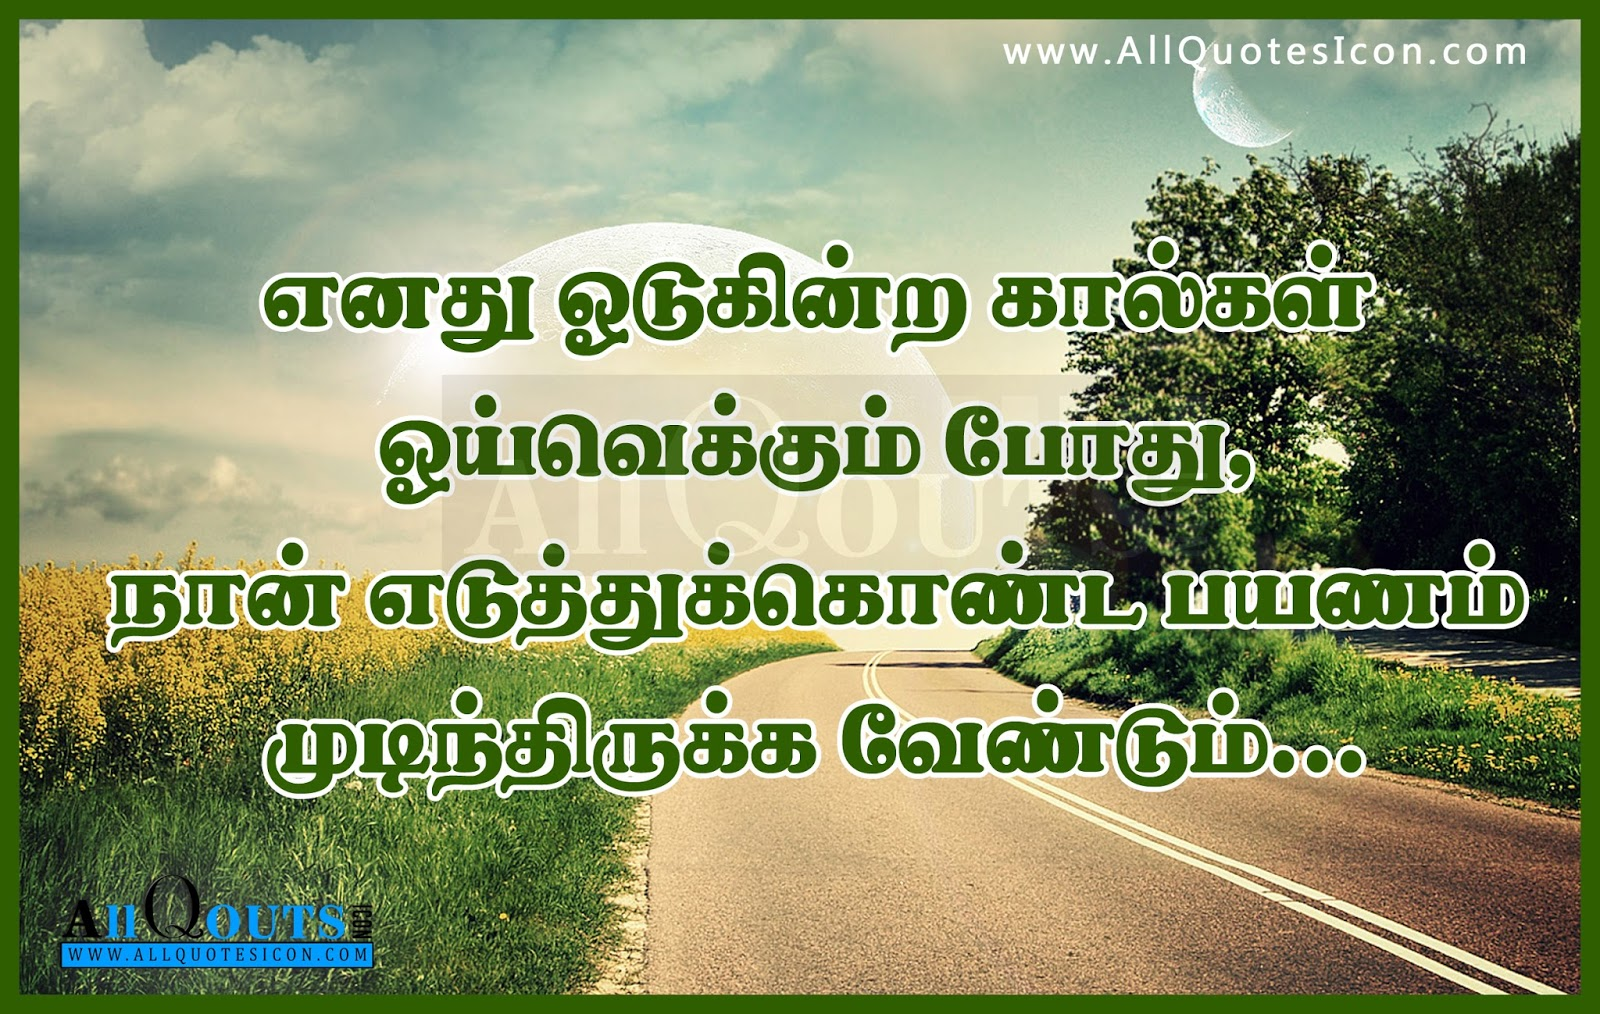 Cute Short Quotes About Life In Tamil